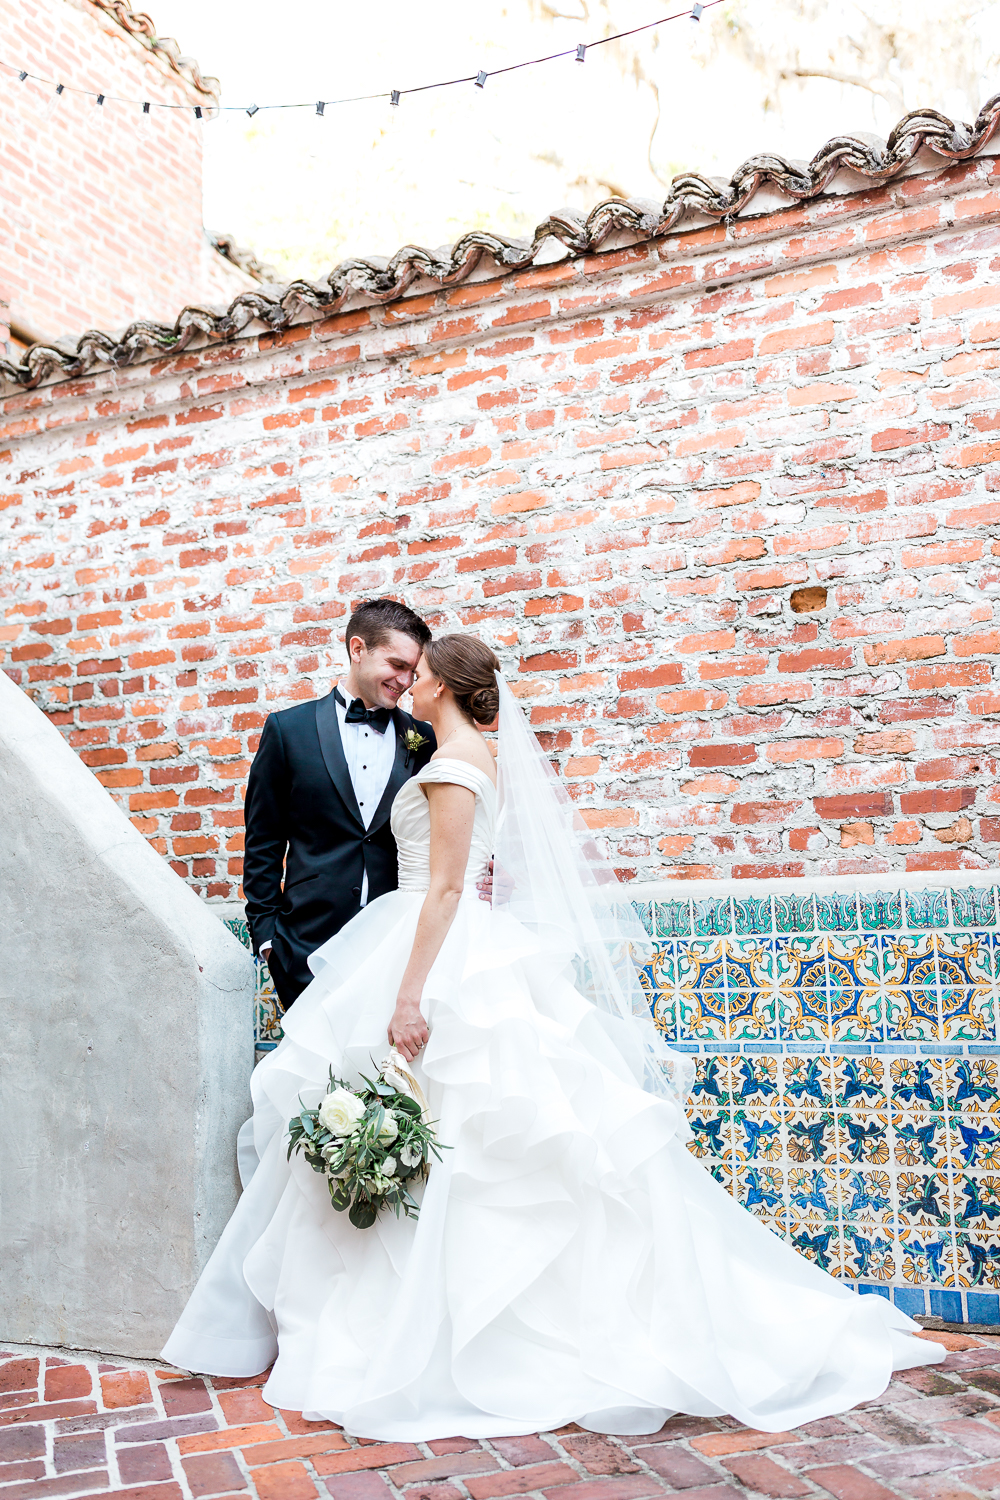 bride and groom in Casa feliz, winter park, fl. Wedding picture ideas